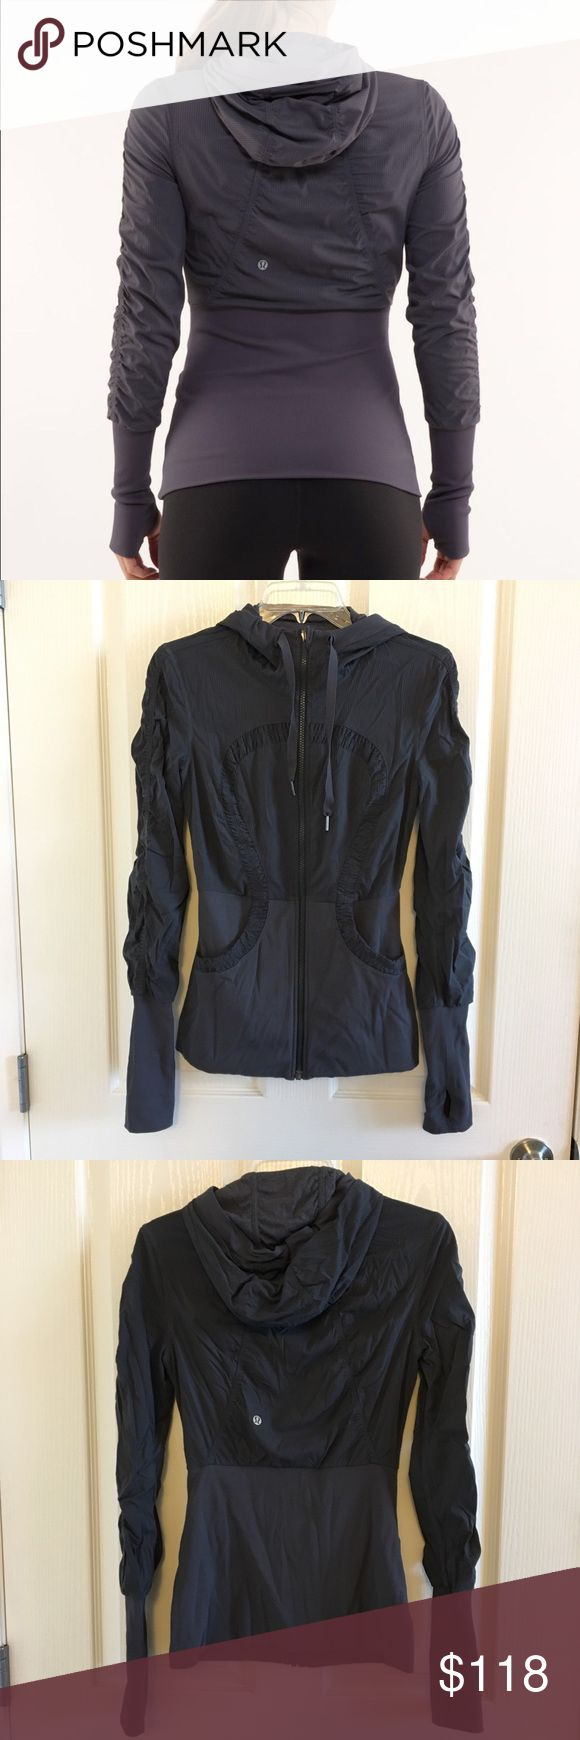 Lululemon Dance Studio Jacket Lululemon dance studio jacket size 6 in coal (Google color or look at 1st stock photo for color representation)  excellent condition however INSIDE the right pocket there is a little bit of pilling from a Velcro heart rate monitor strap that does not affect the aesthetic or function. outside is in excellent used condition. lululemon athletica Jackets & Coats